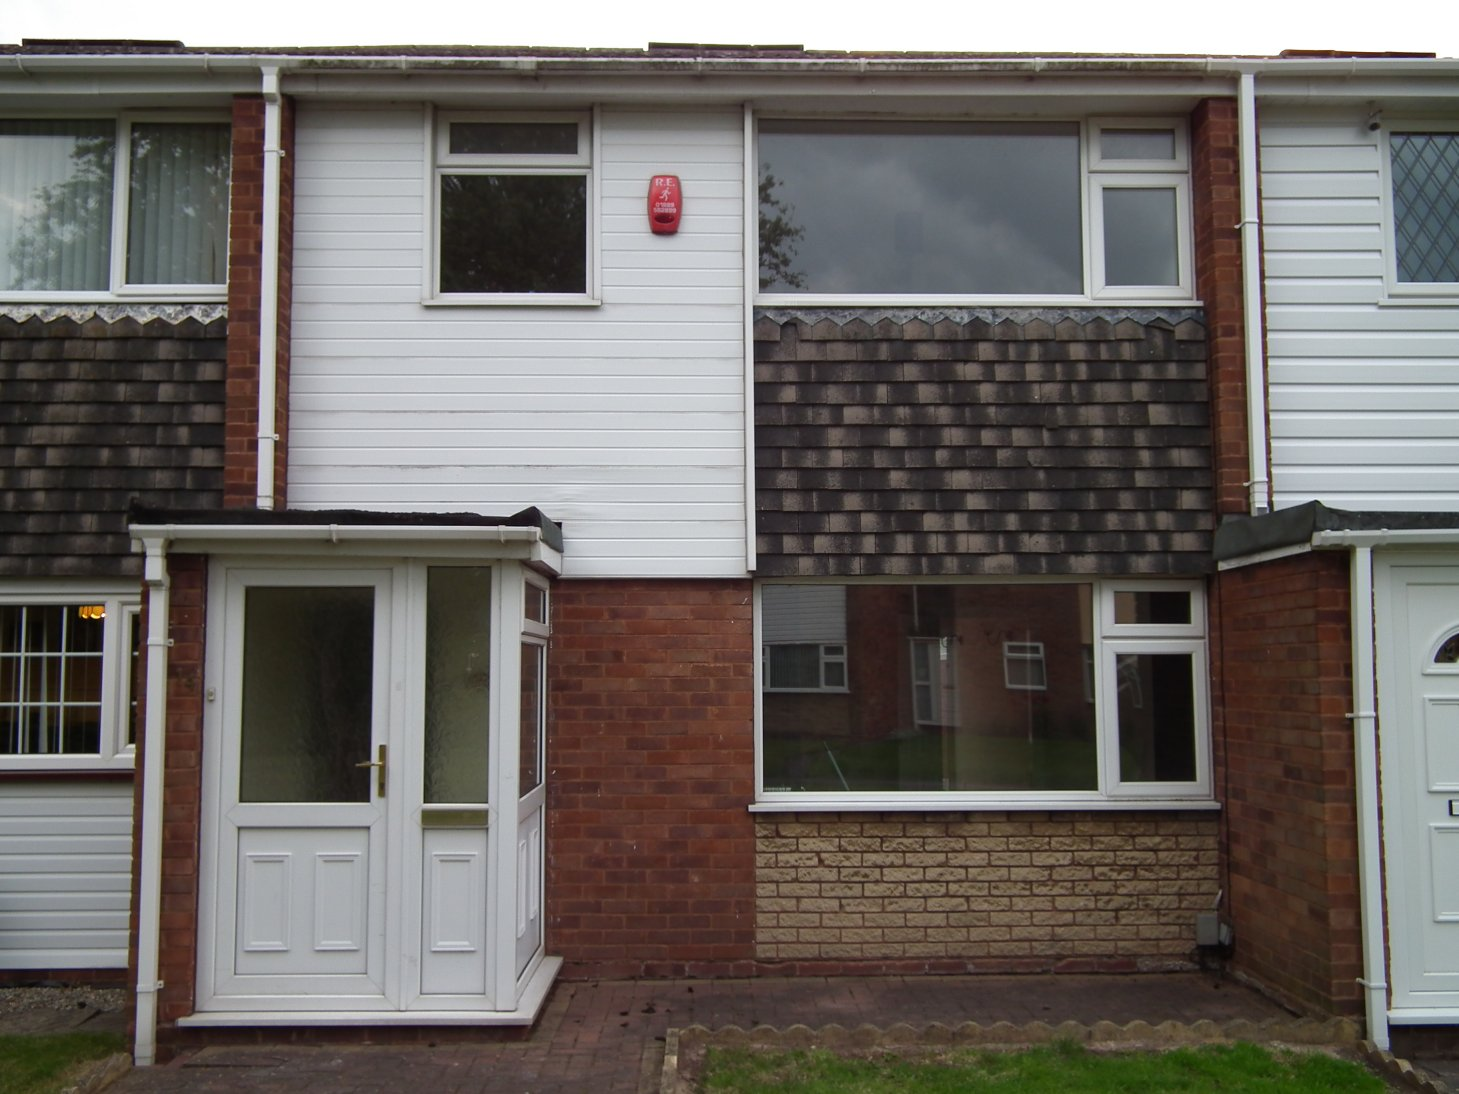 3 Bedroom Unfurnished House To Rent On Swallow Close, Rugeley, WS15 By Private  Landlord